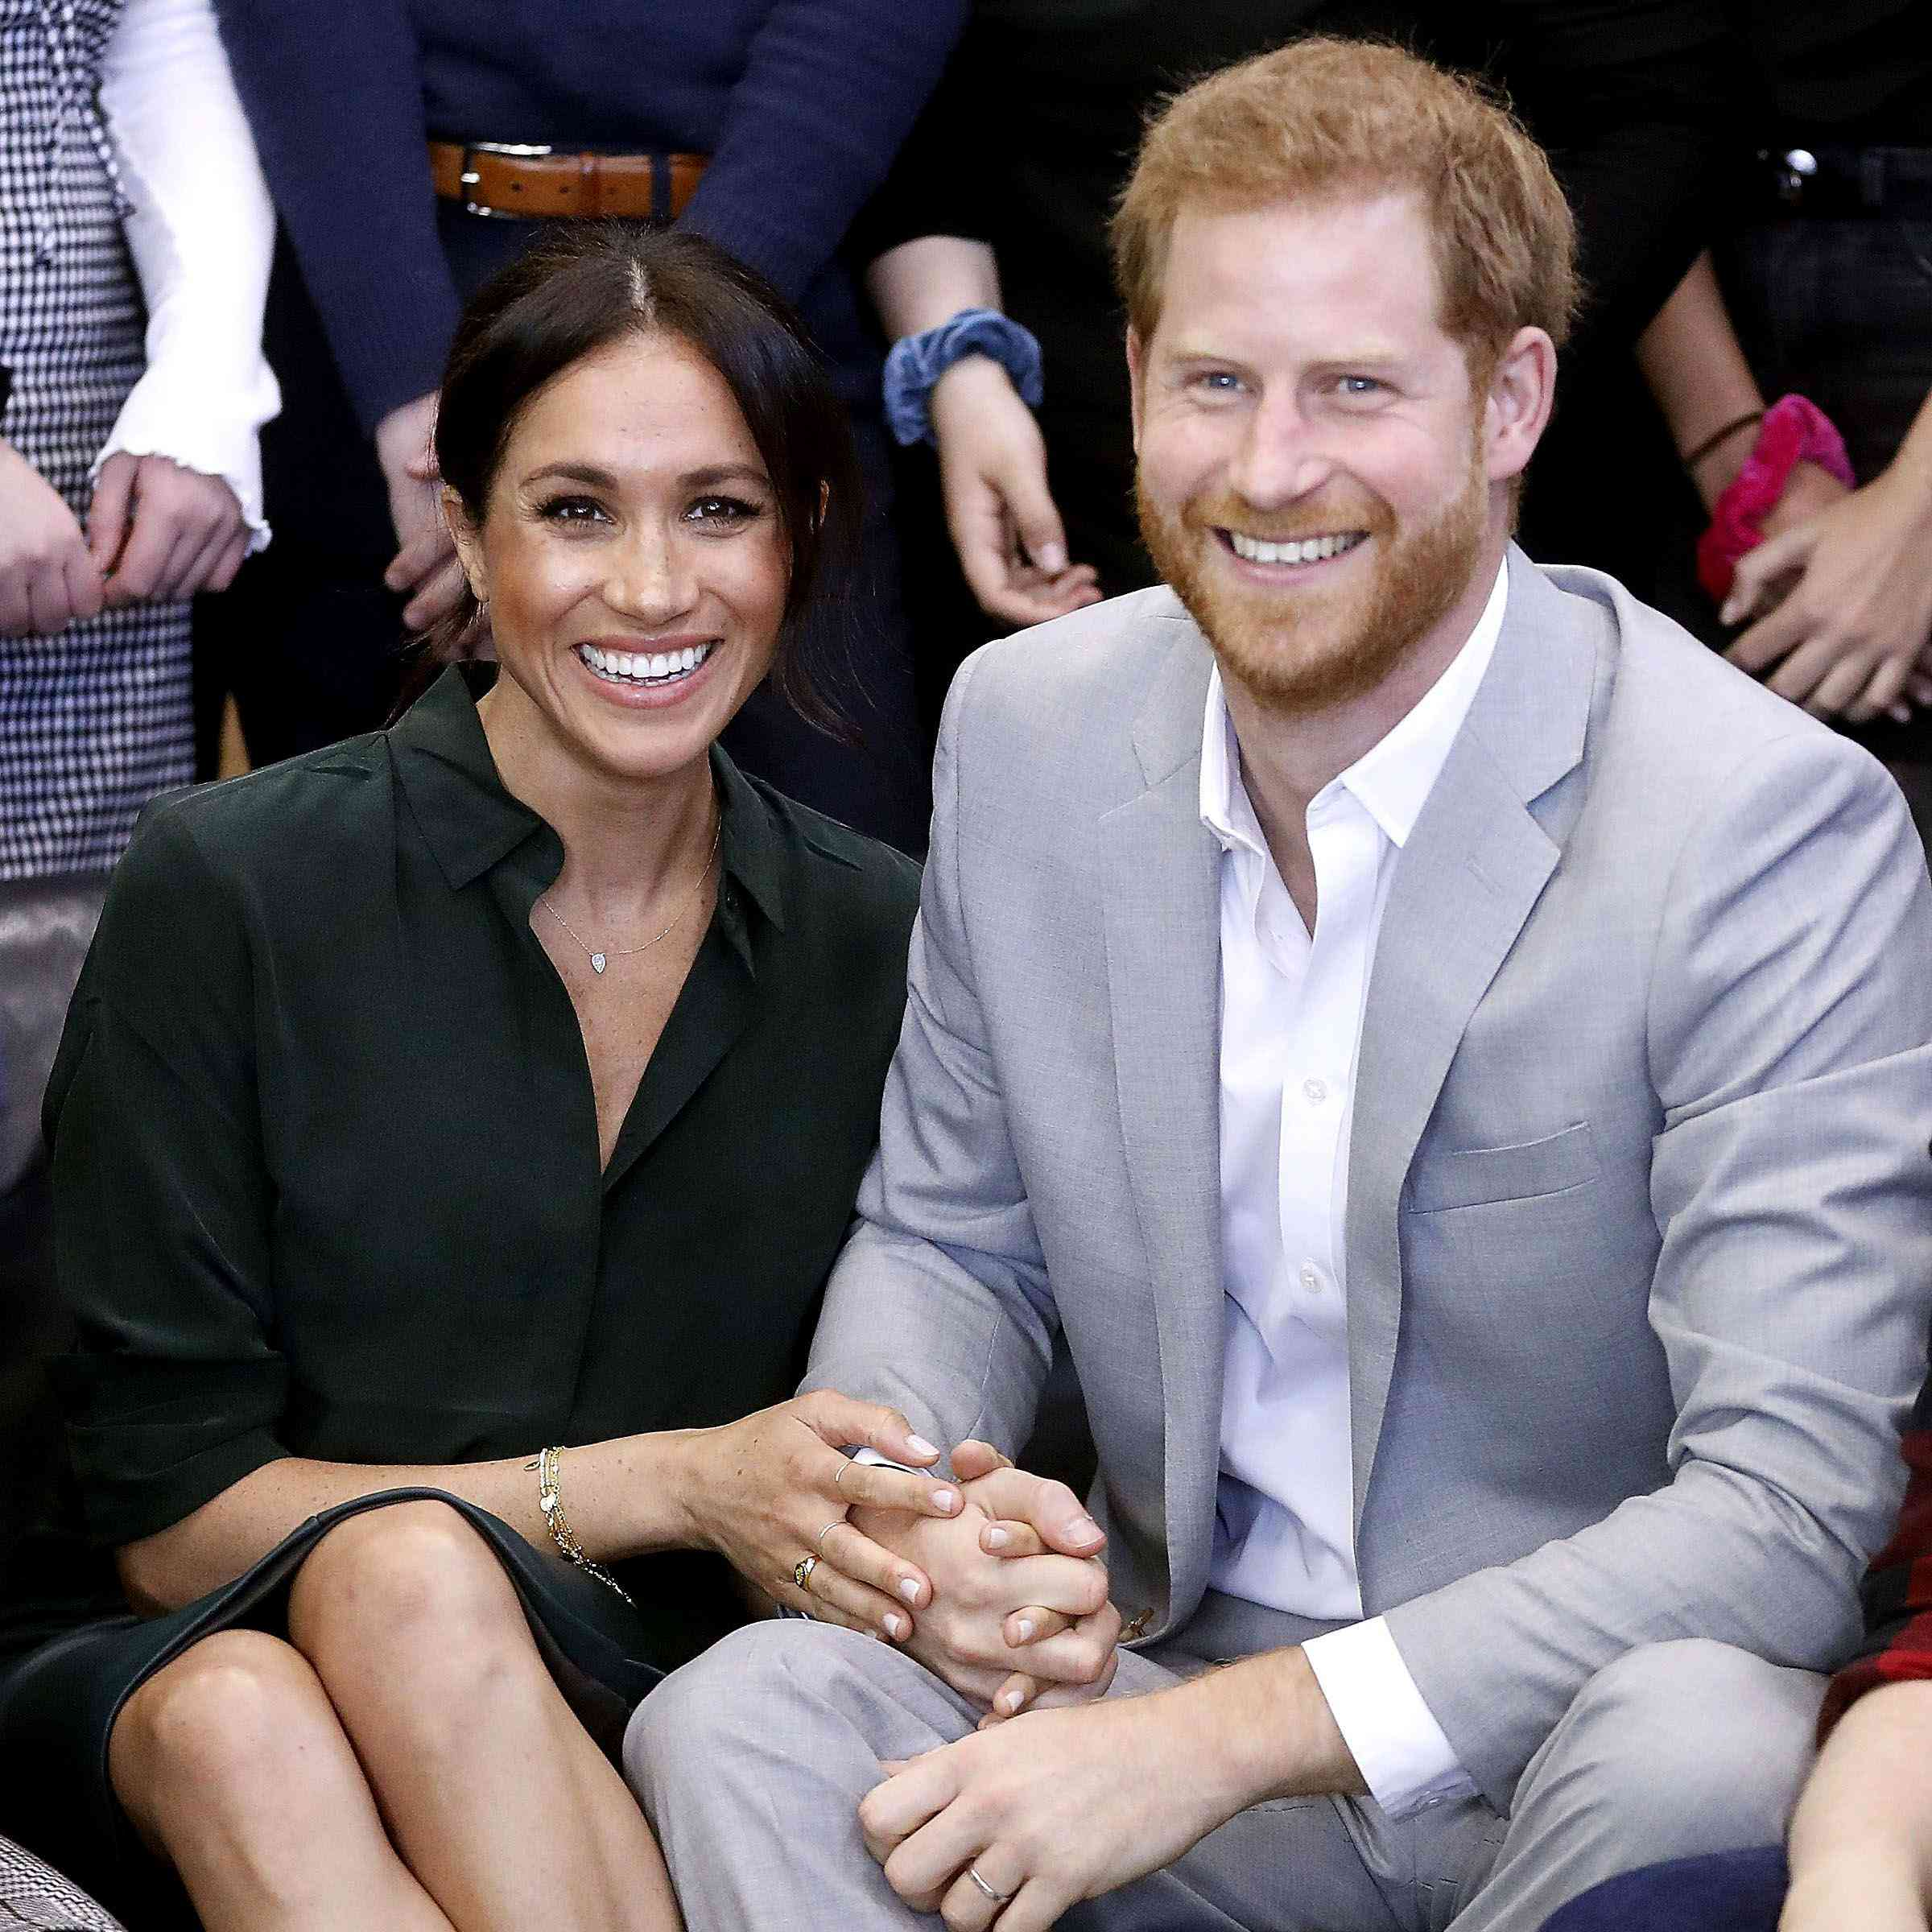 Meghan Markle and Prince Harry Ditched Their Security to Snap That Forest Photo